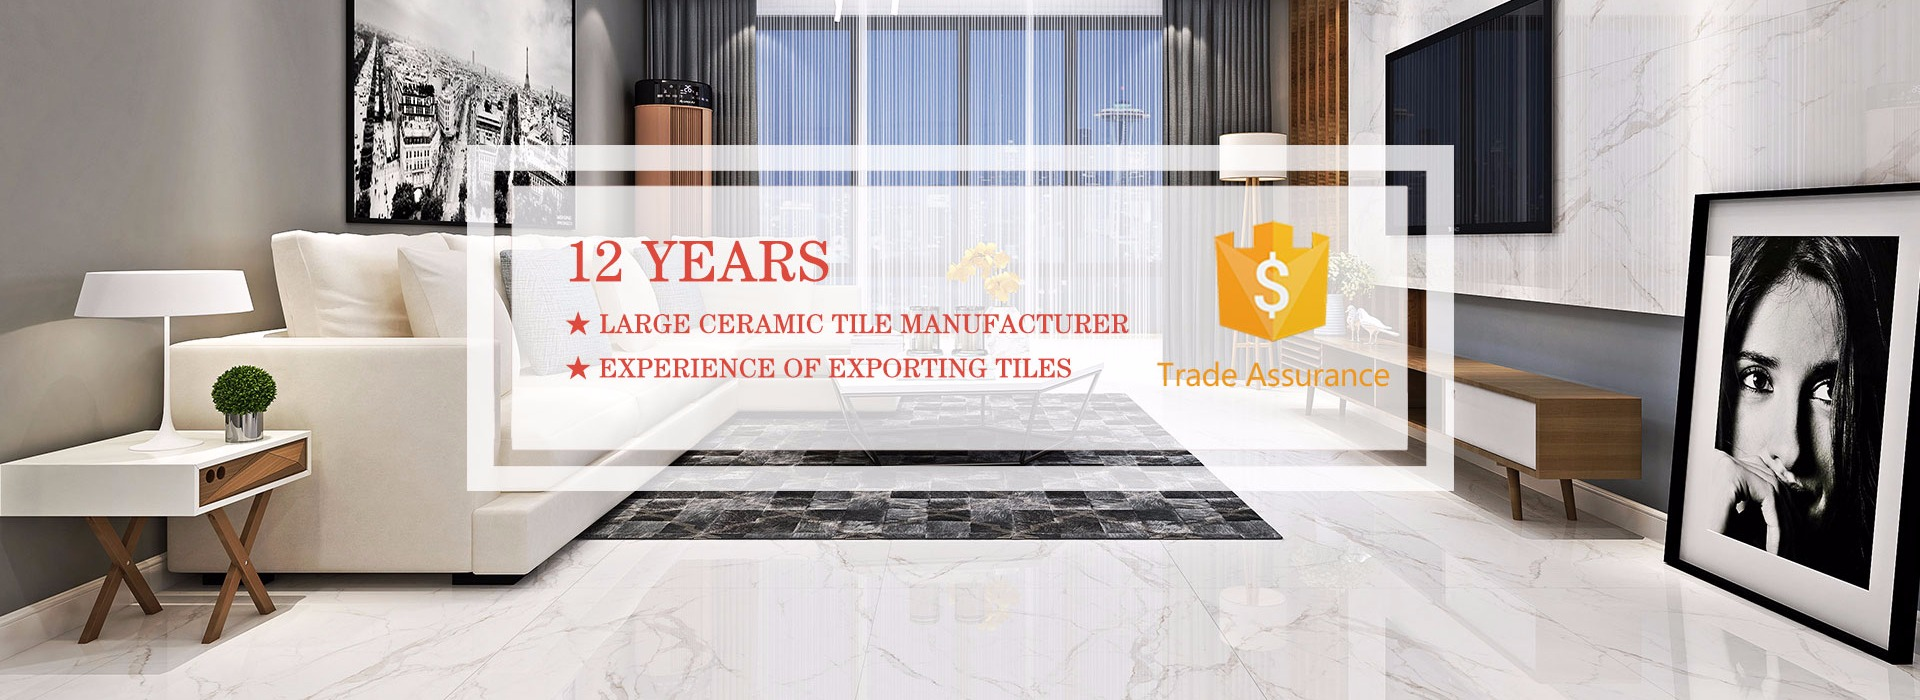 Foshan grand ceramics co ltd porcelain tile ceramic tile and developmentspecializing productionmaketing as one of the new modern enterprise the company is headquartered in ceramic city foshan guangdong dailygadgetfo Choice Image